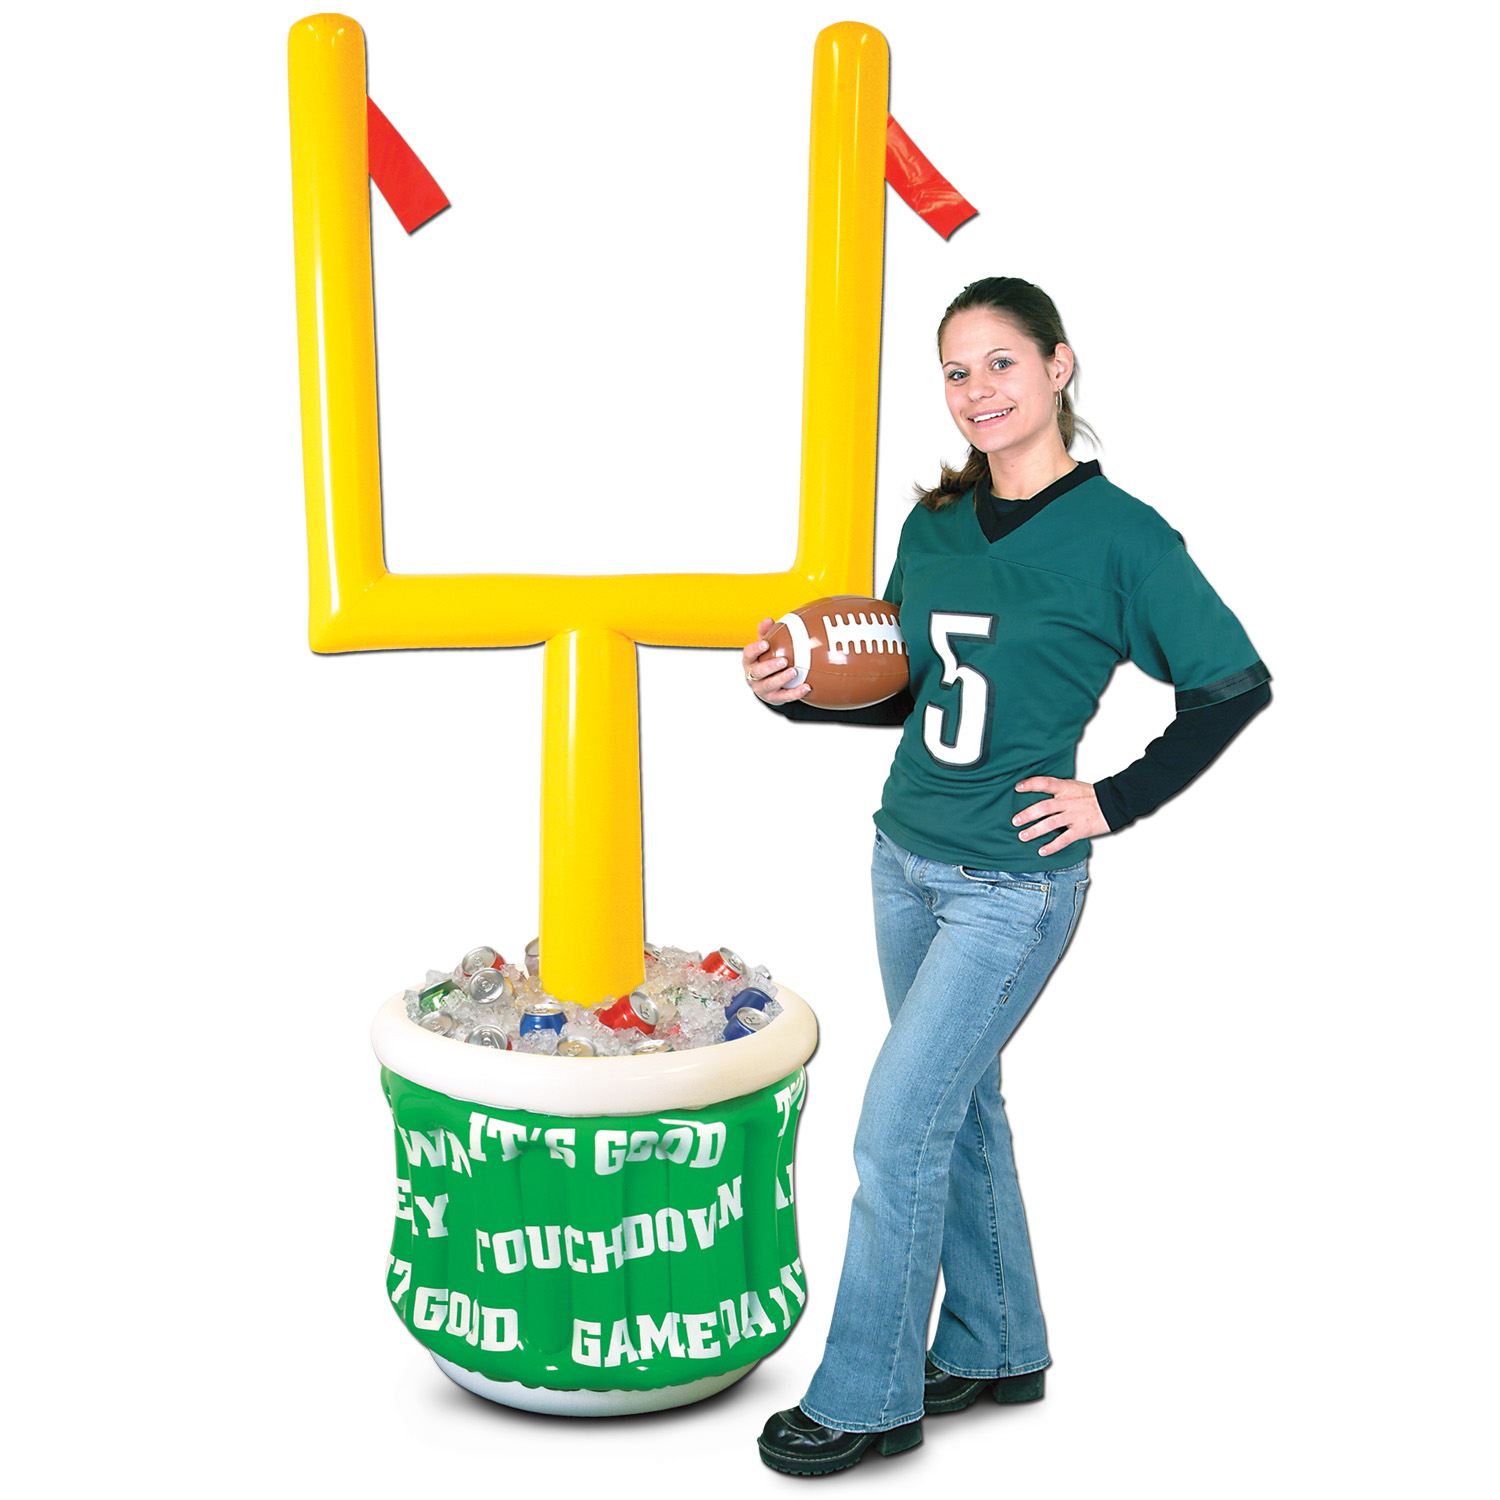 inflatable football goal post with a game day drink cooler at the bottom